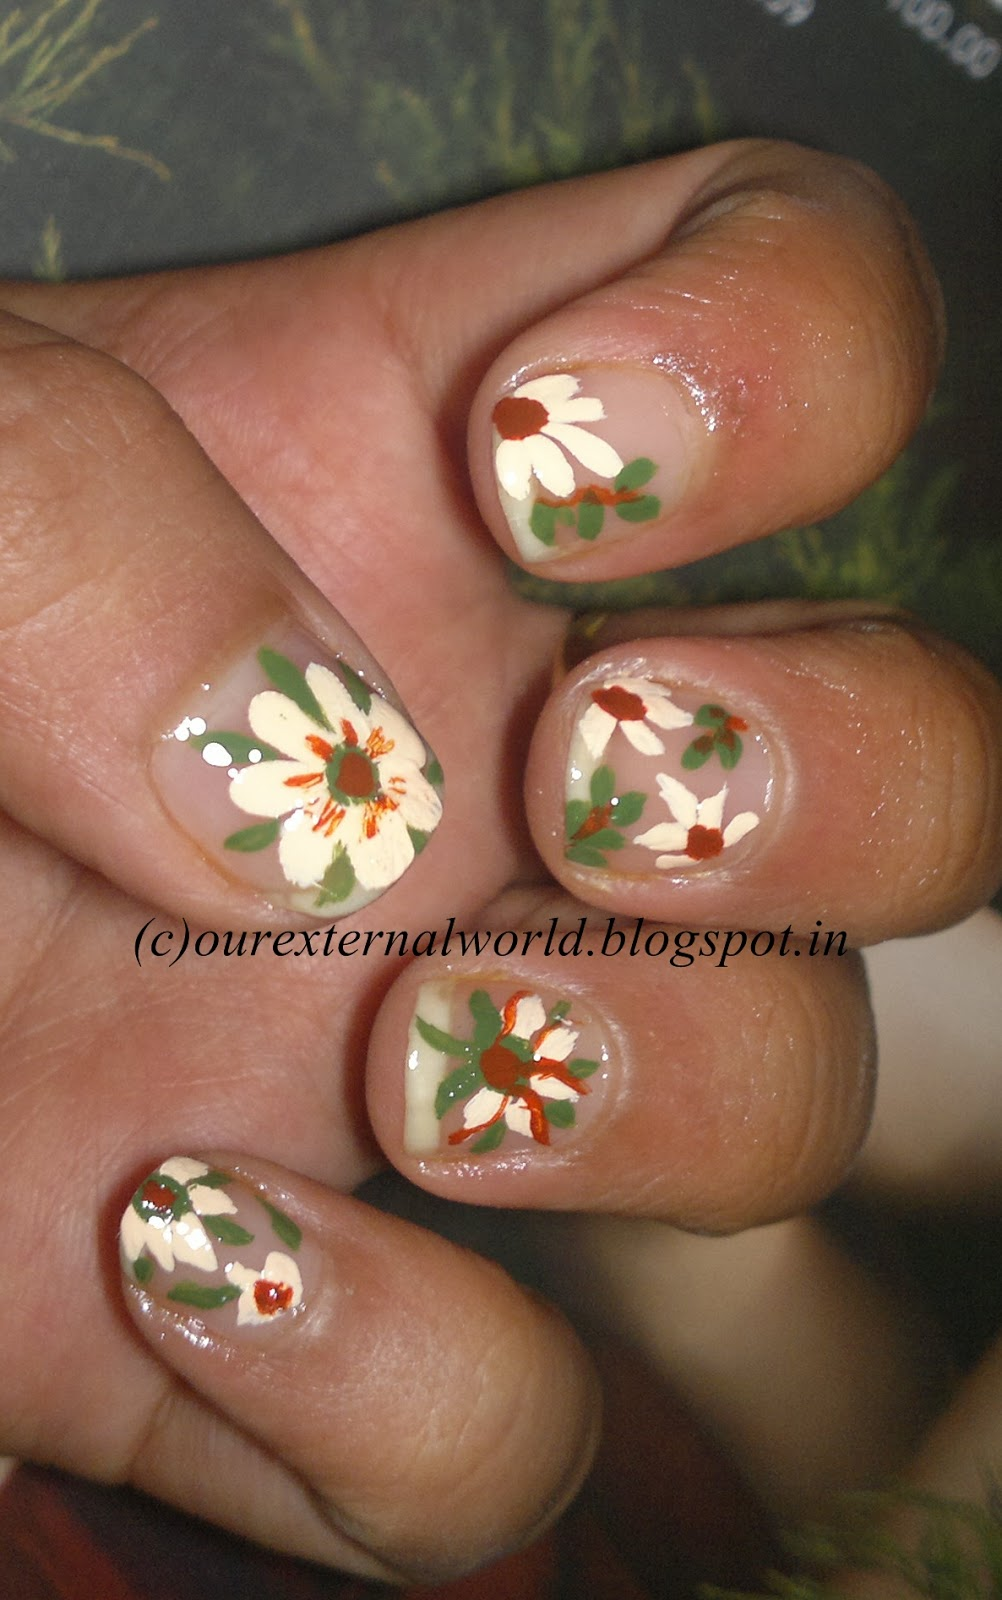 Acrylic Nail Art Hot To Paint Your Nails